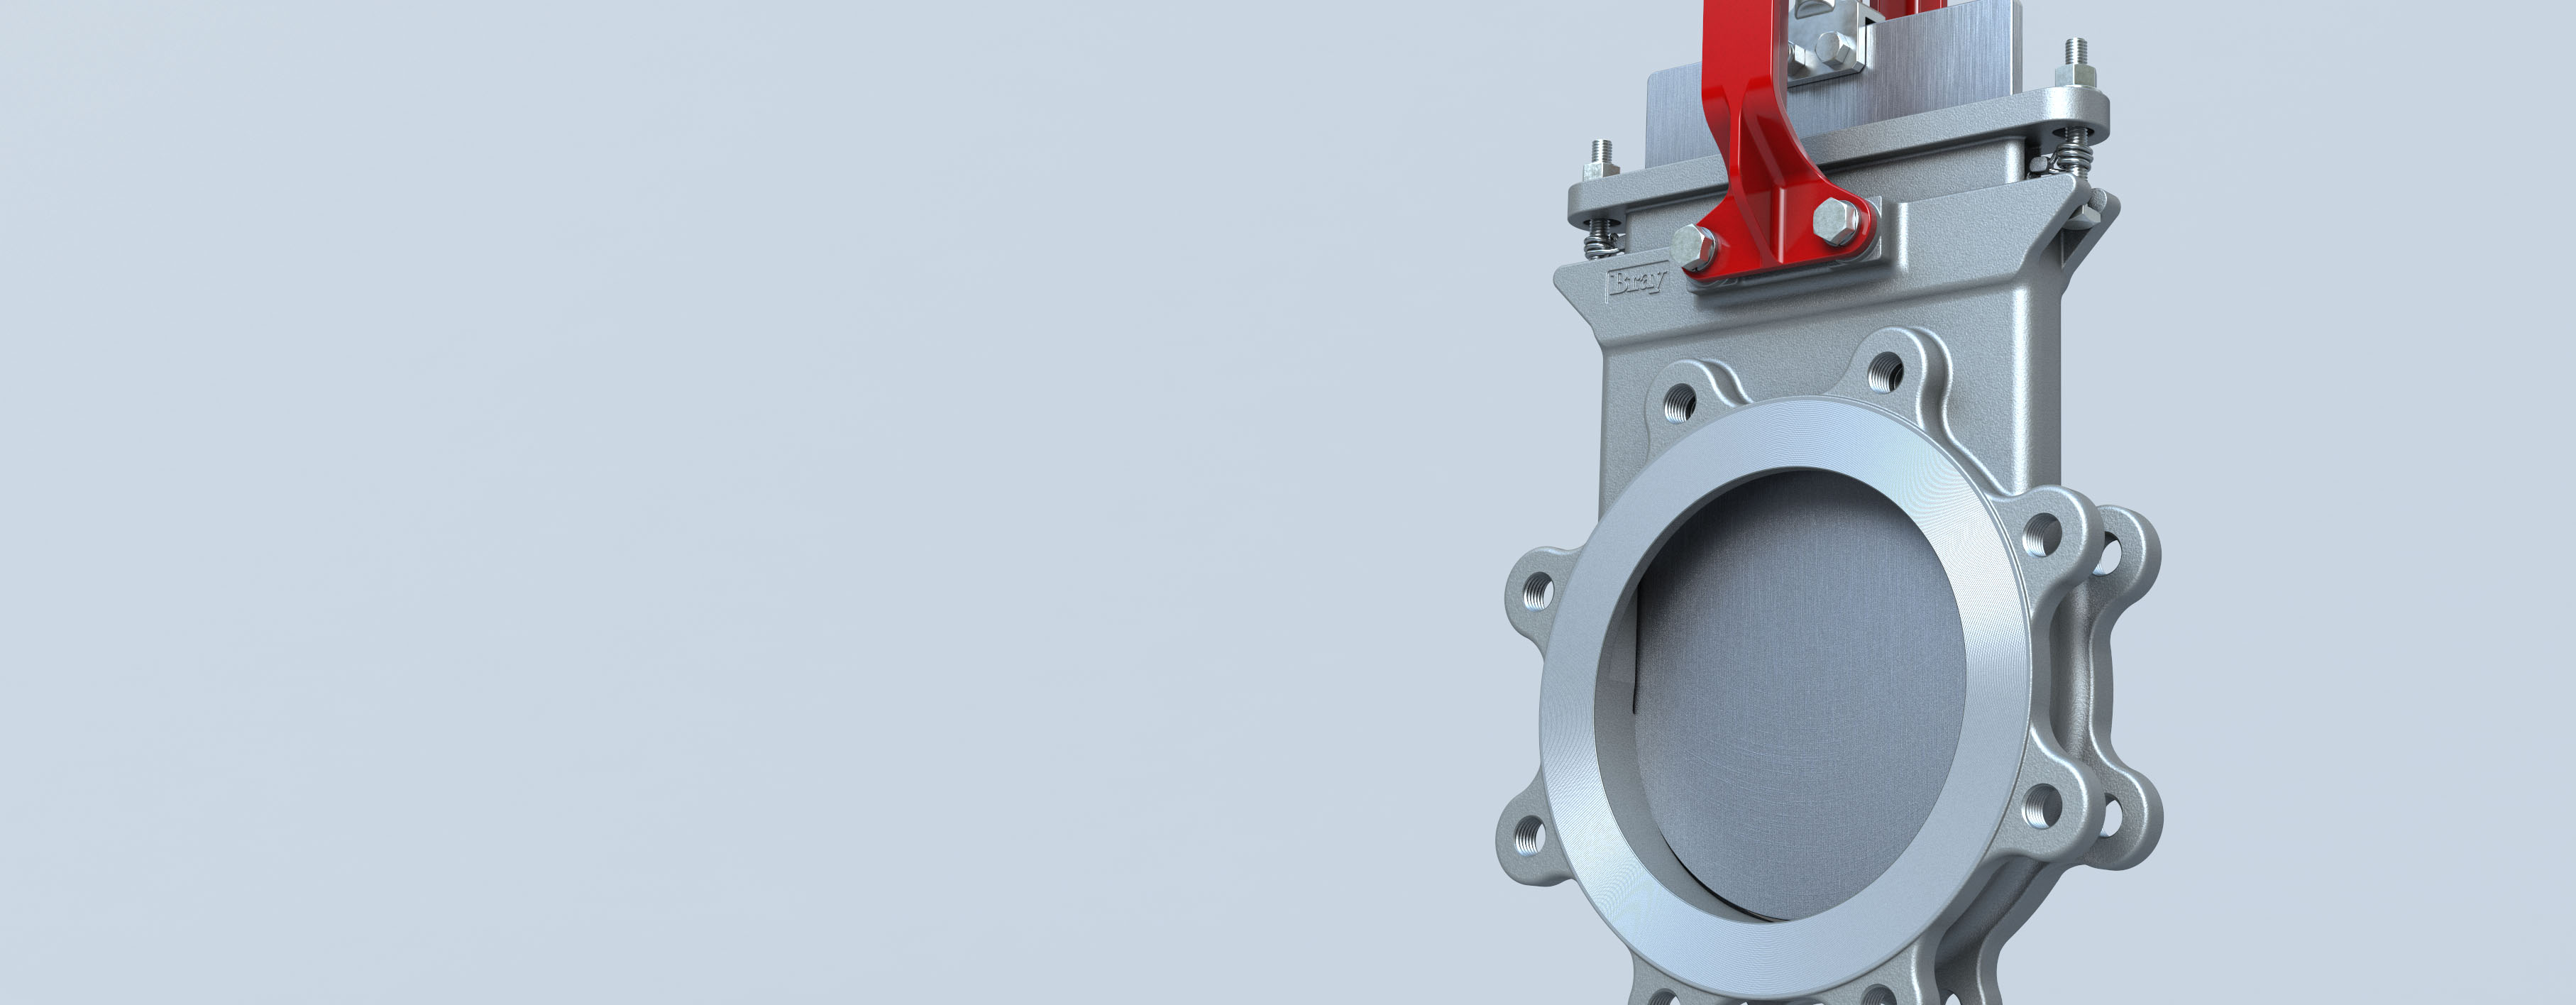 Knife Gate Valve Series 740 Bidirectional Bray